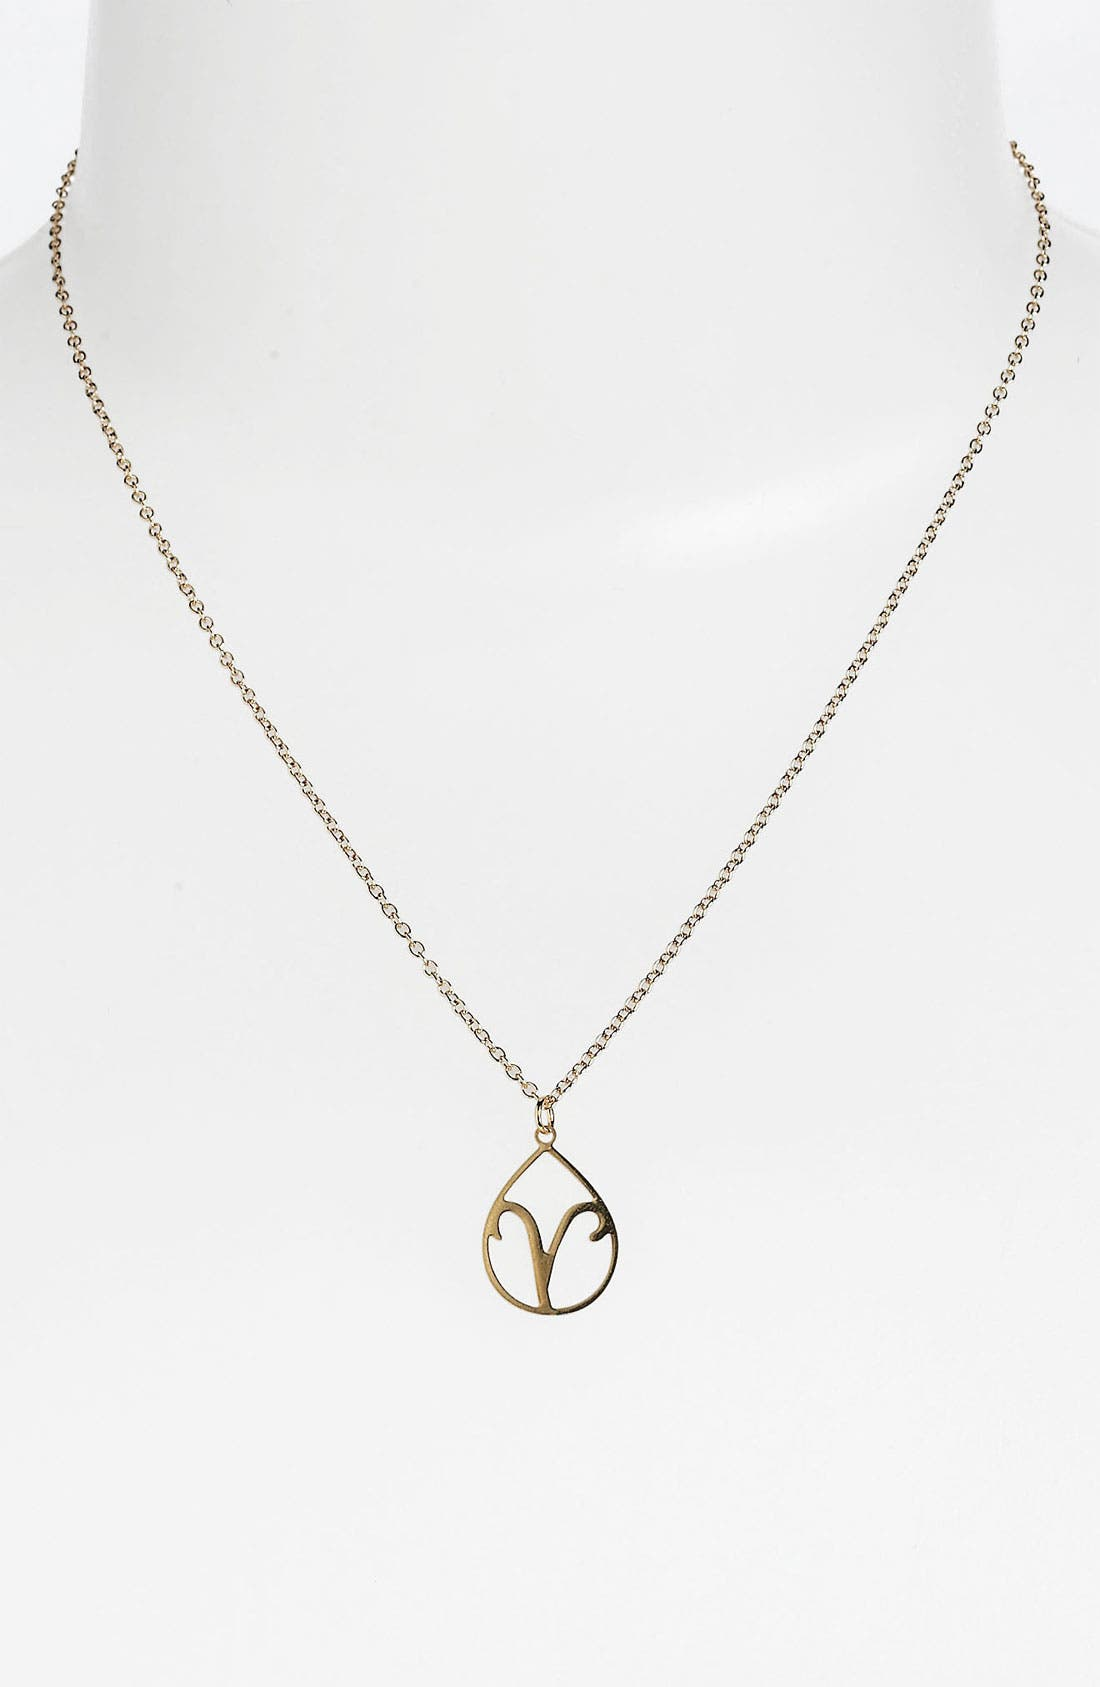 Alternate Image 1 Selected - Kris Nations 'Aries' Necklace